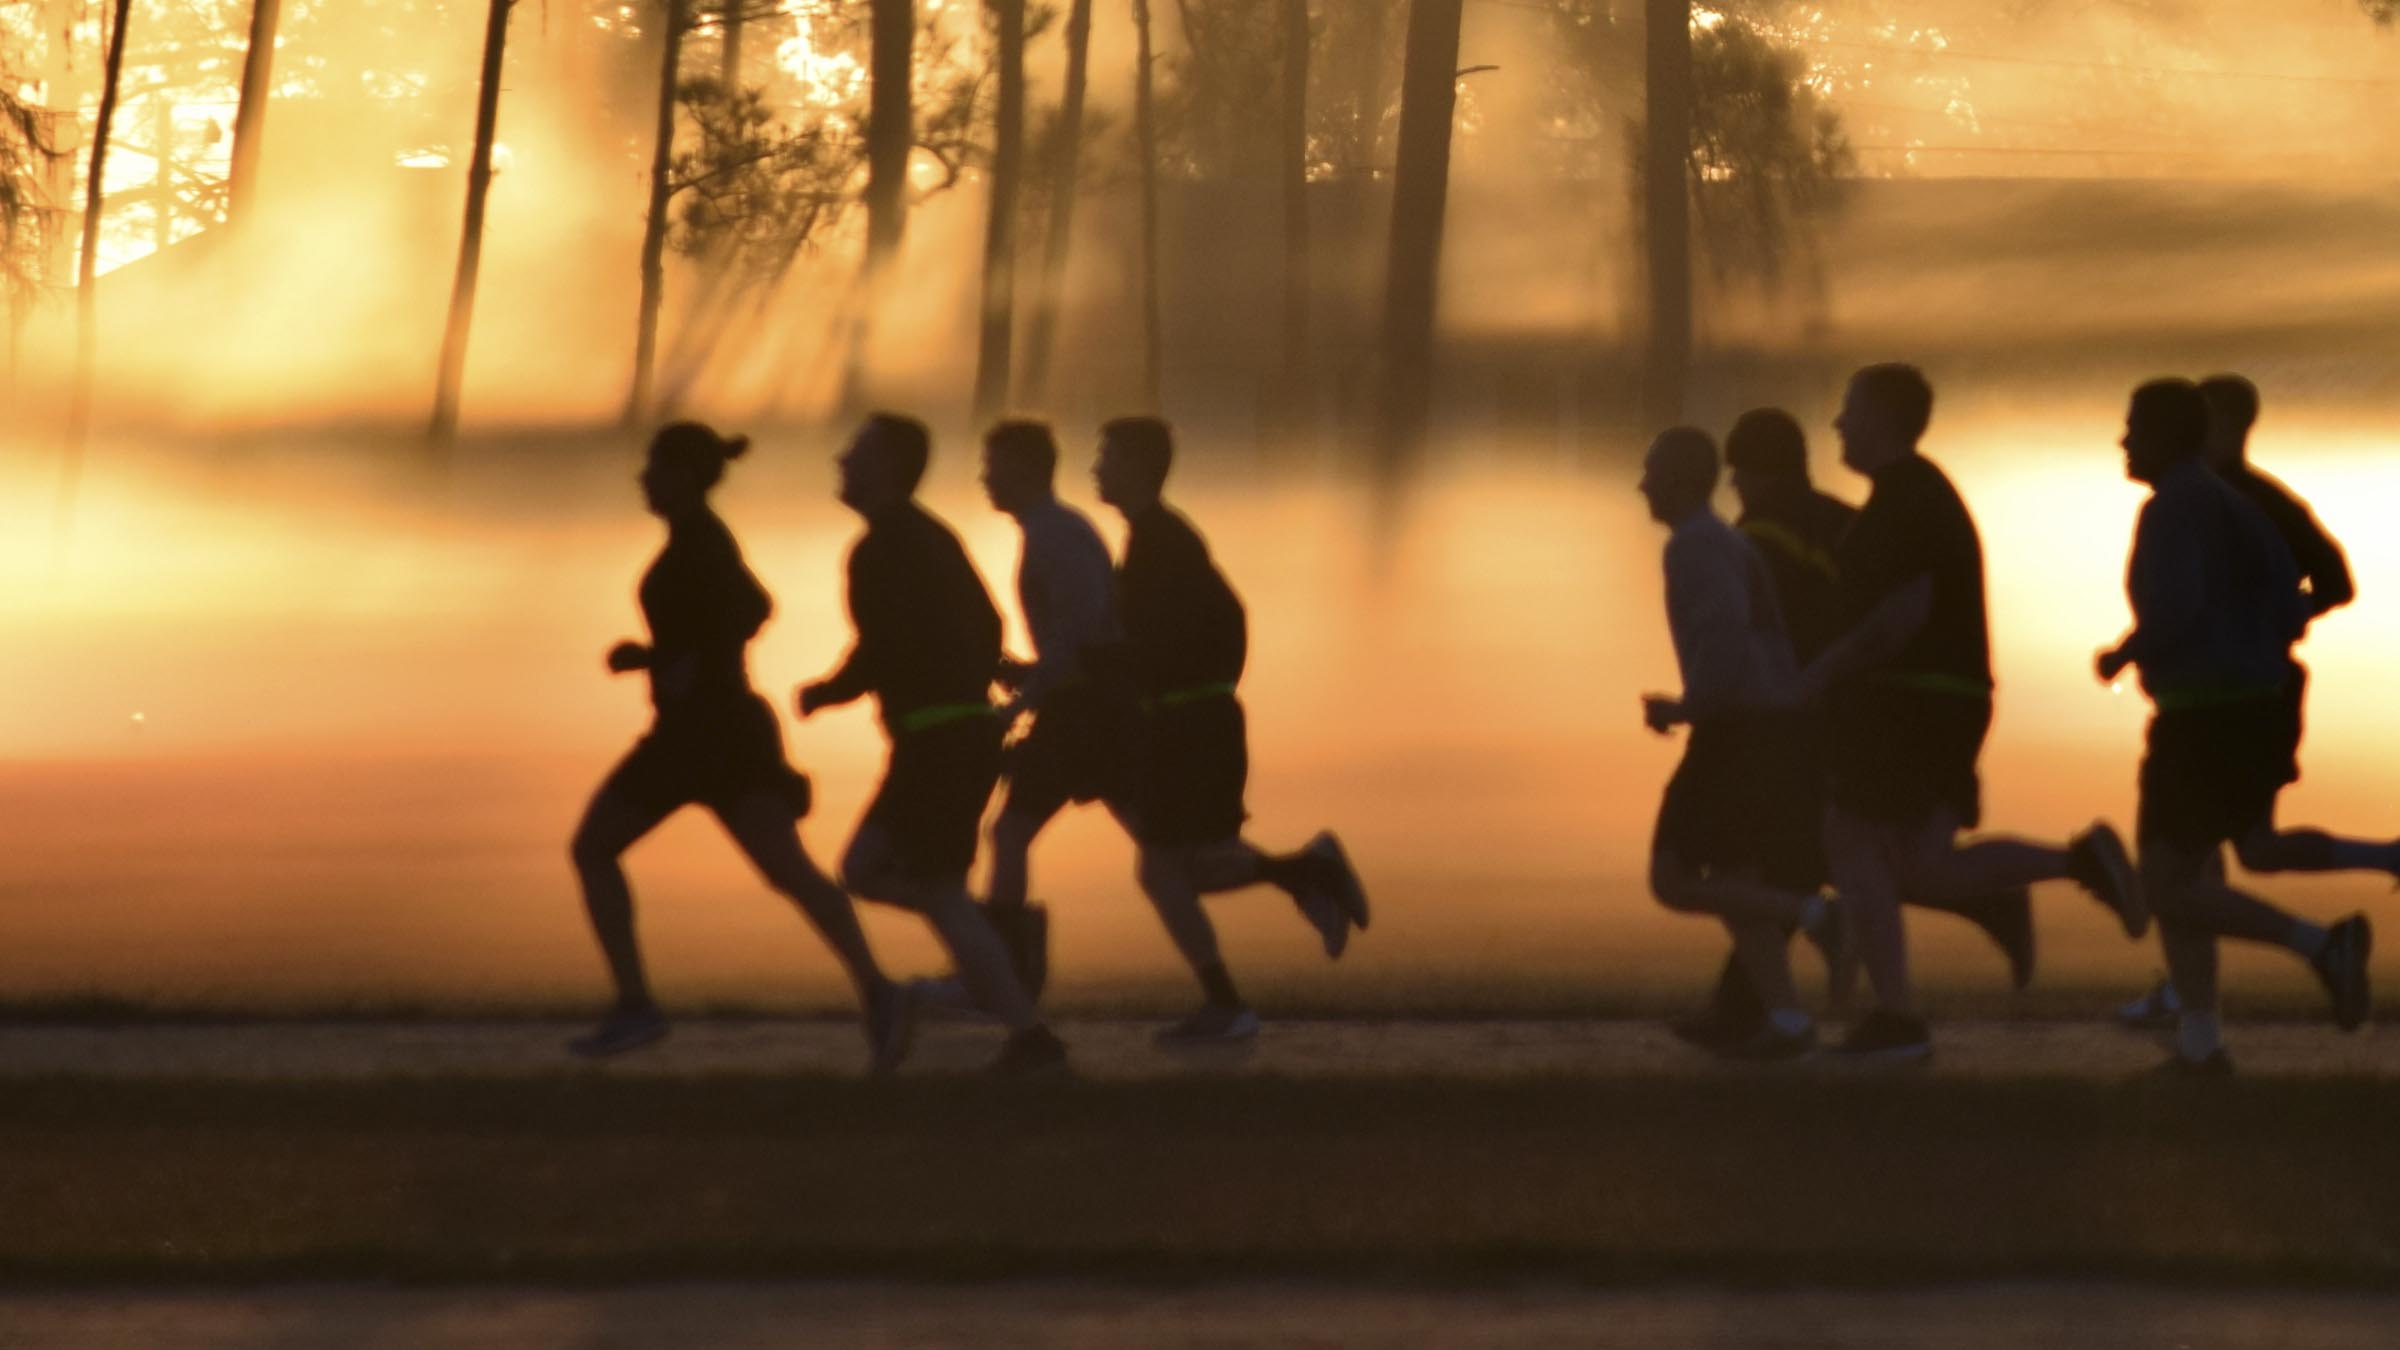 Runners at dawn